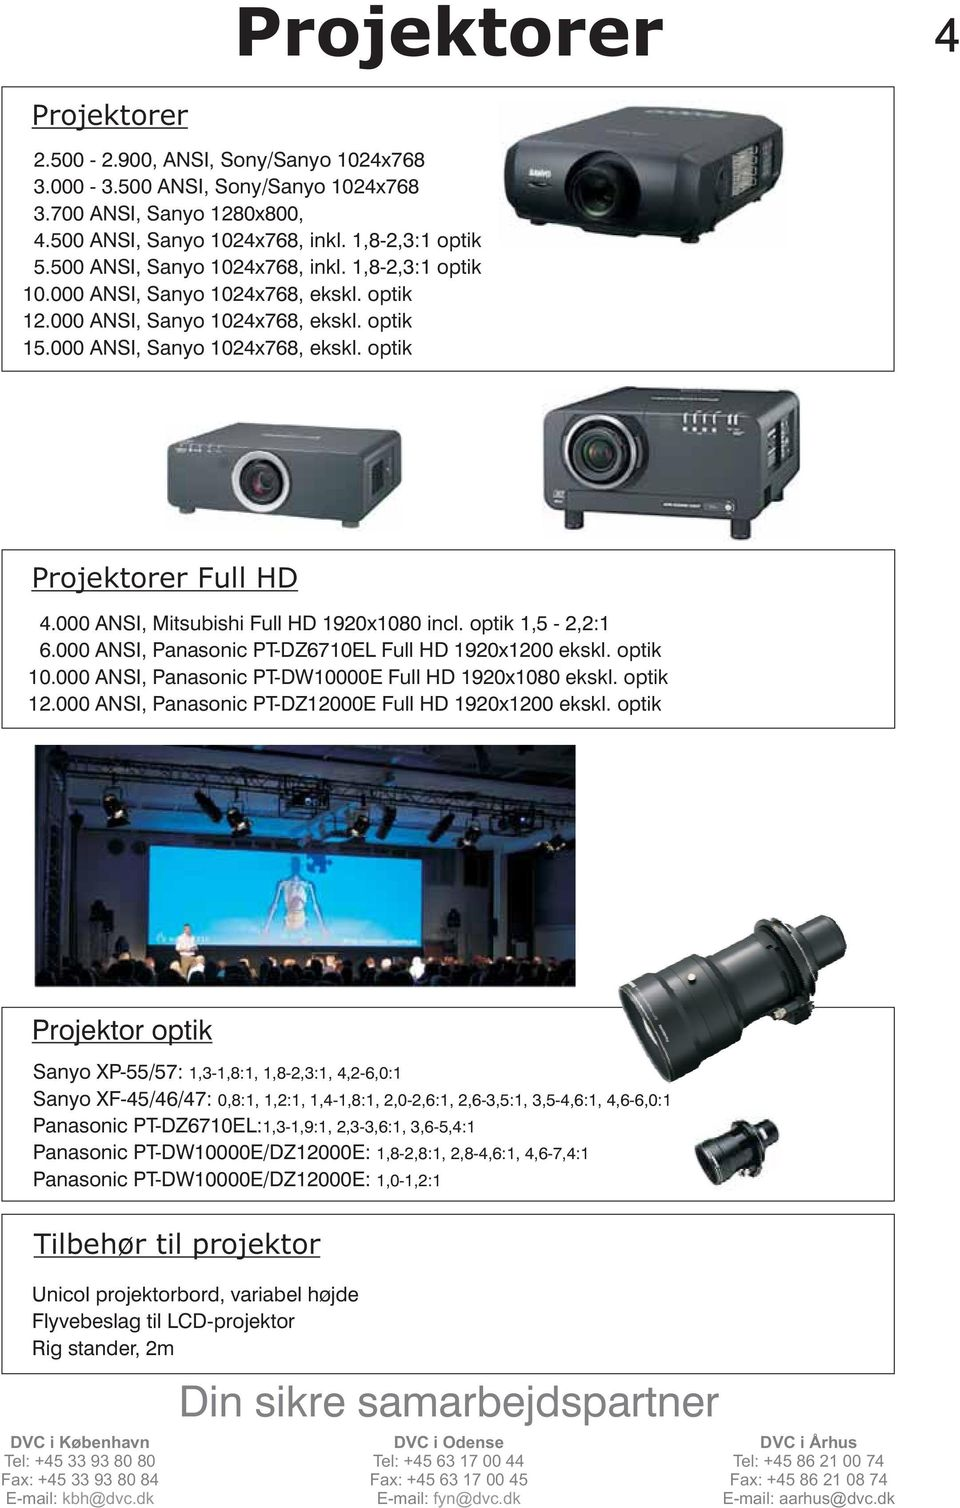 000 ANSI, Mitsubishi Full HD 1920x1080 incl. optik 1,5-2,2:1 6.000 ANSI, Panasonic PT-DZ6710EL Full HD 1920x1200 ekskl. optik 10.000 ANSI, Panasonic PT-DW10000E Full HD 1920x1080 ekskl. optik 12.